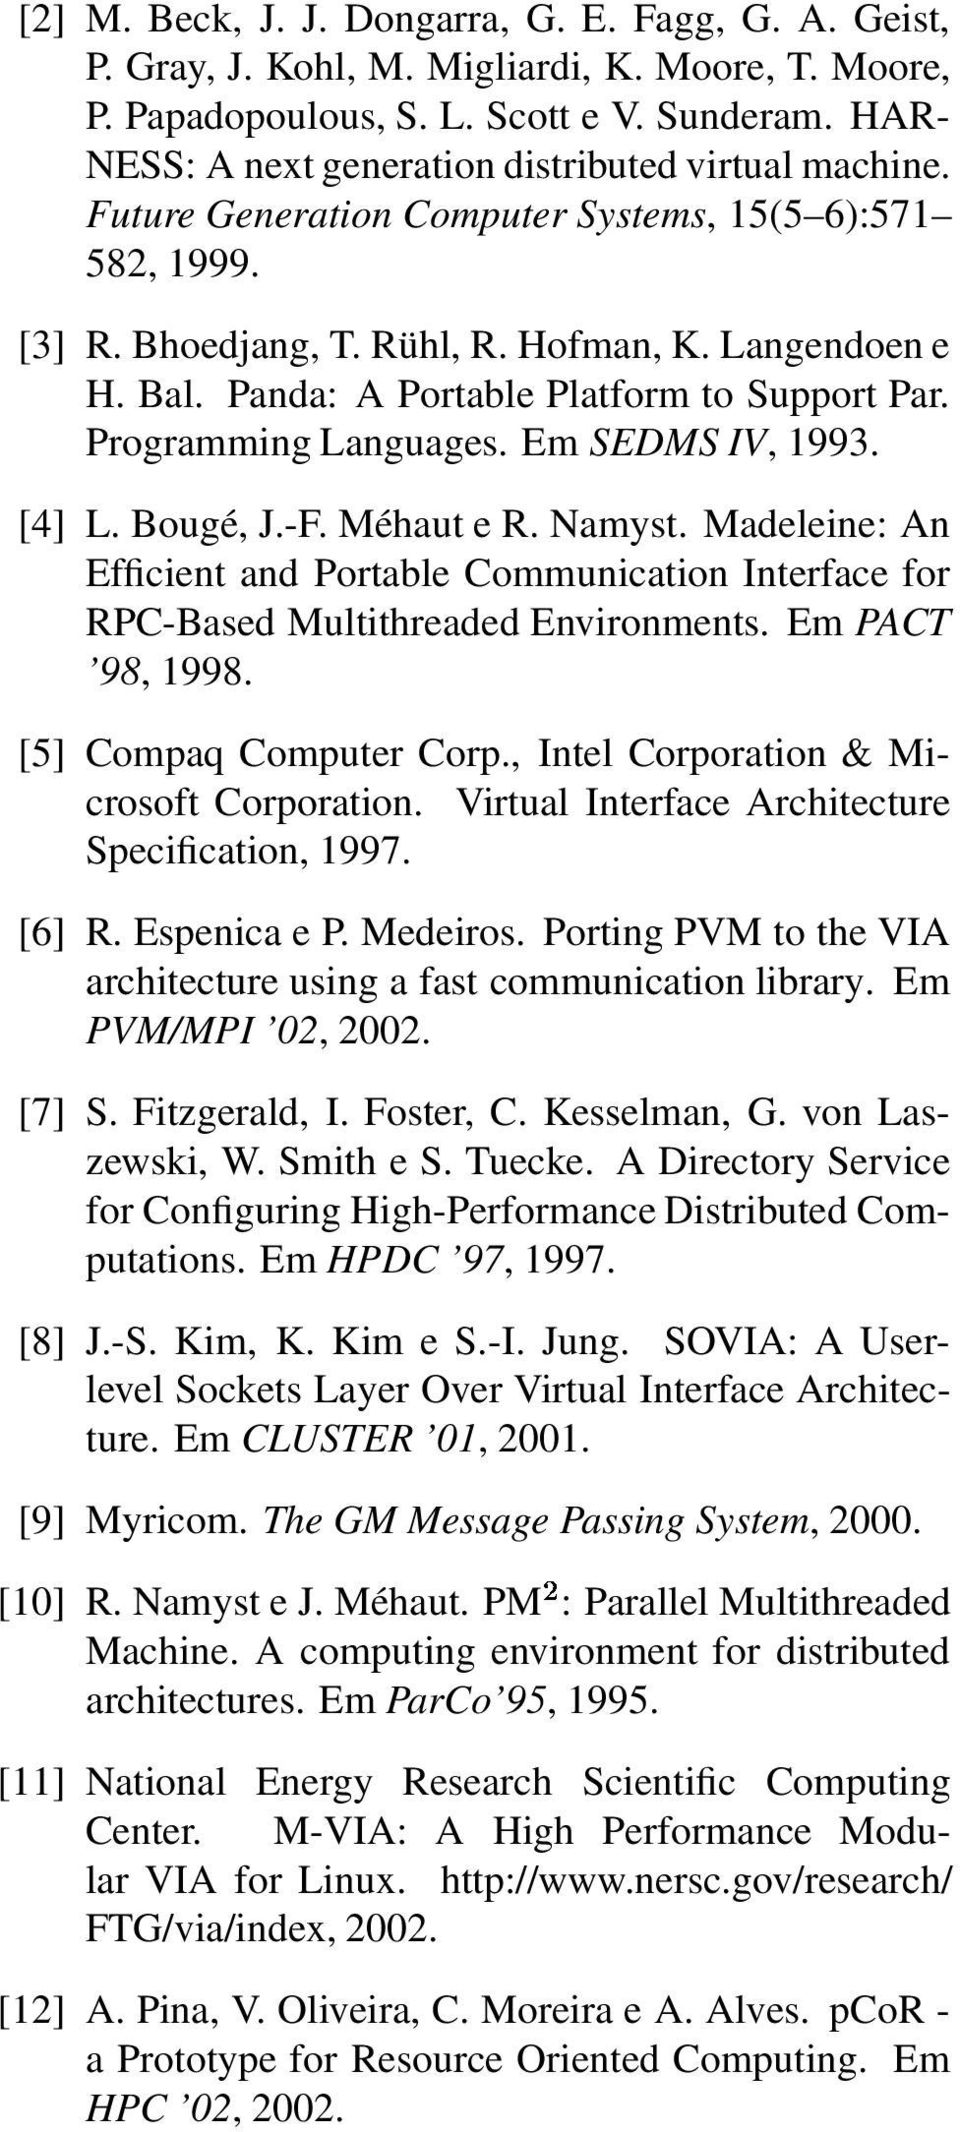 Panda: A Portable Platform to Support Par. Programming Languages. Em SEDMS IV, 1993. [4] L. Bougé, J.-F. Méhaut e R. Namyst.